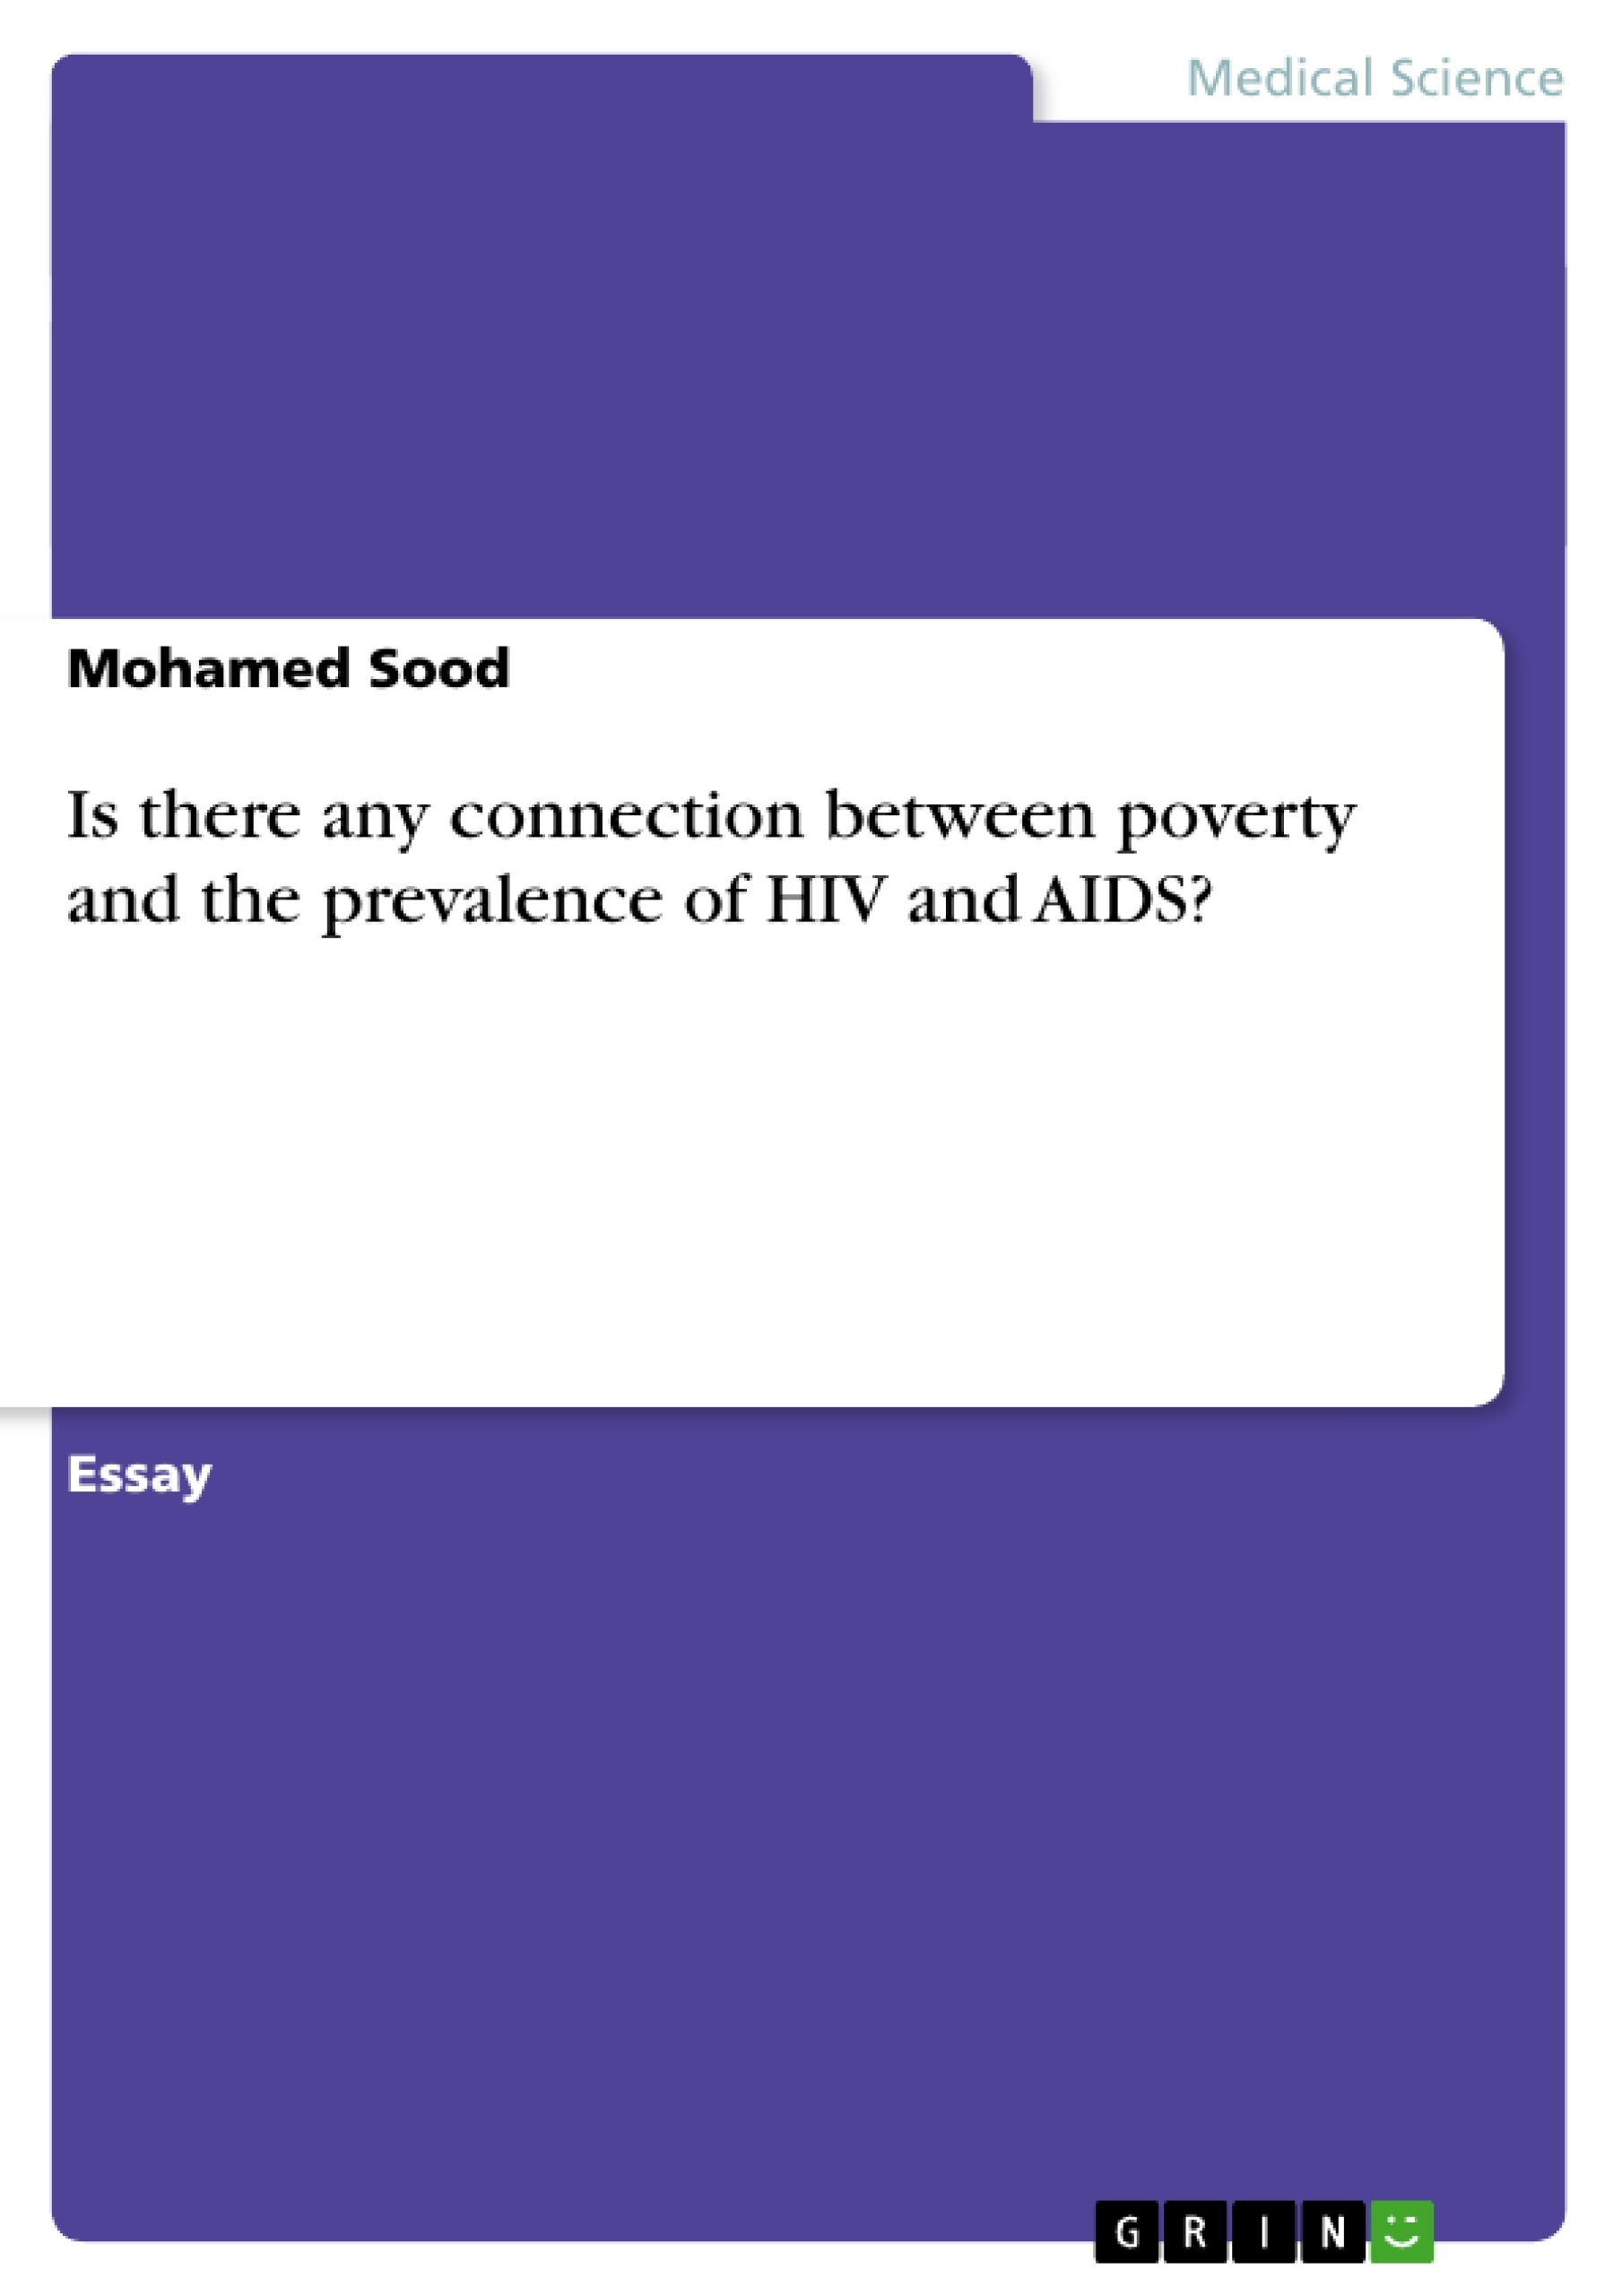 Title: Is there any connection between poverty and the prevalence of HIV and AIDS?